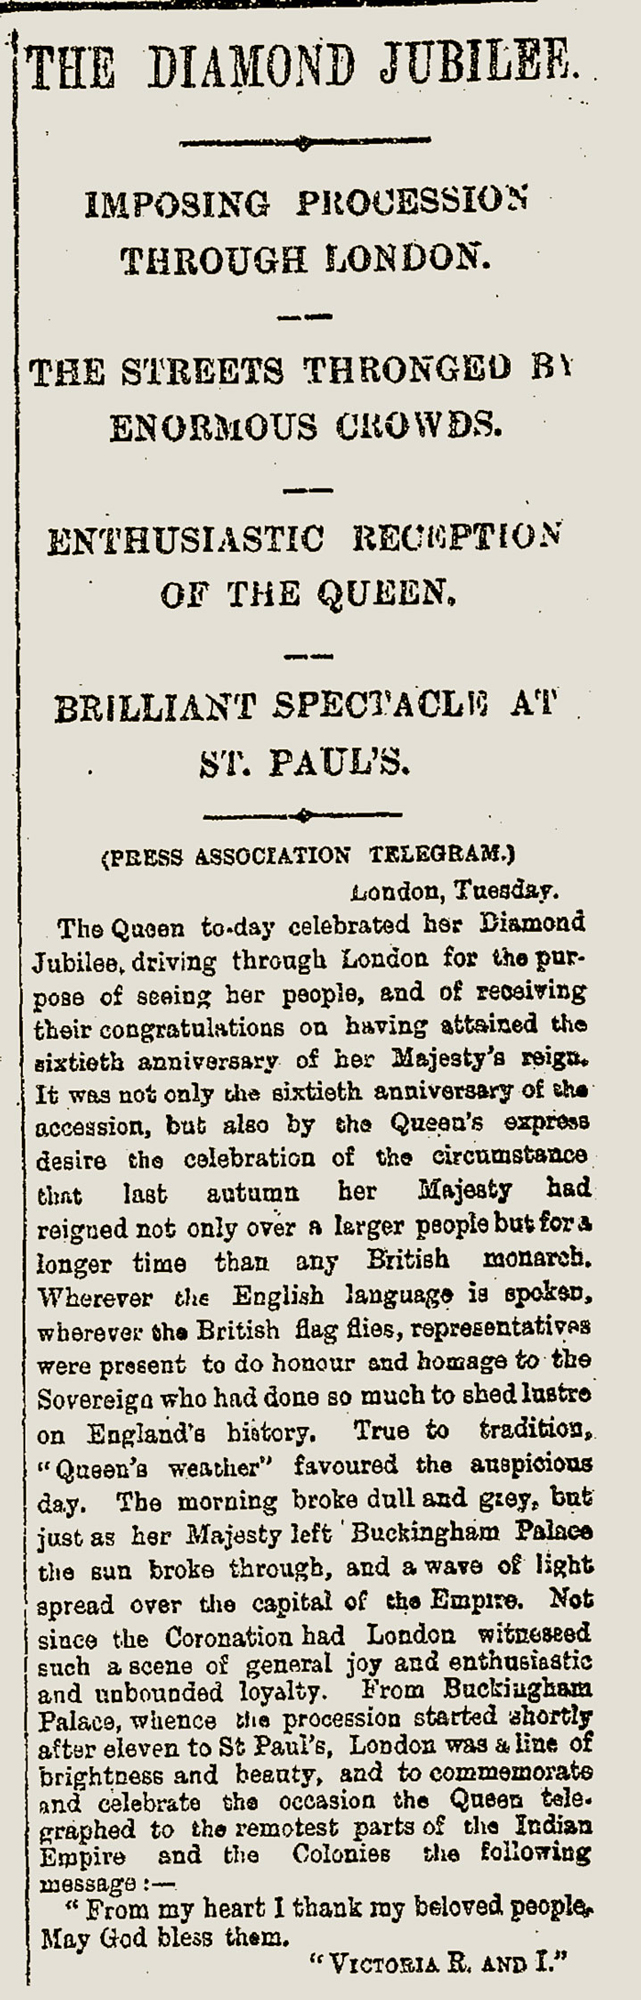 Newspaper report on Queen Victorias Diamond Jubilee 1897